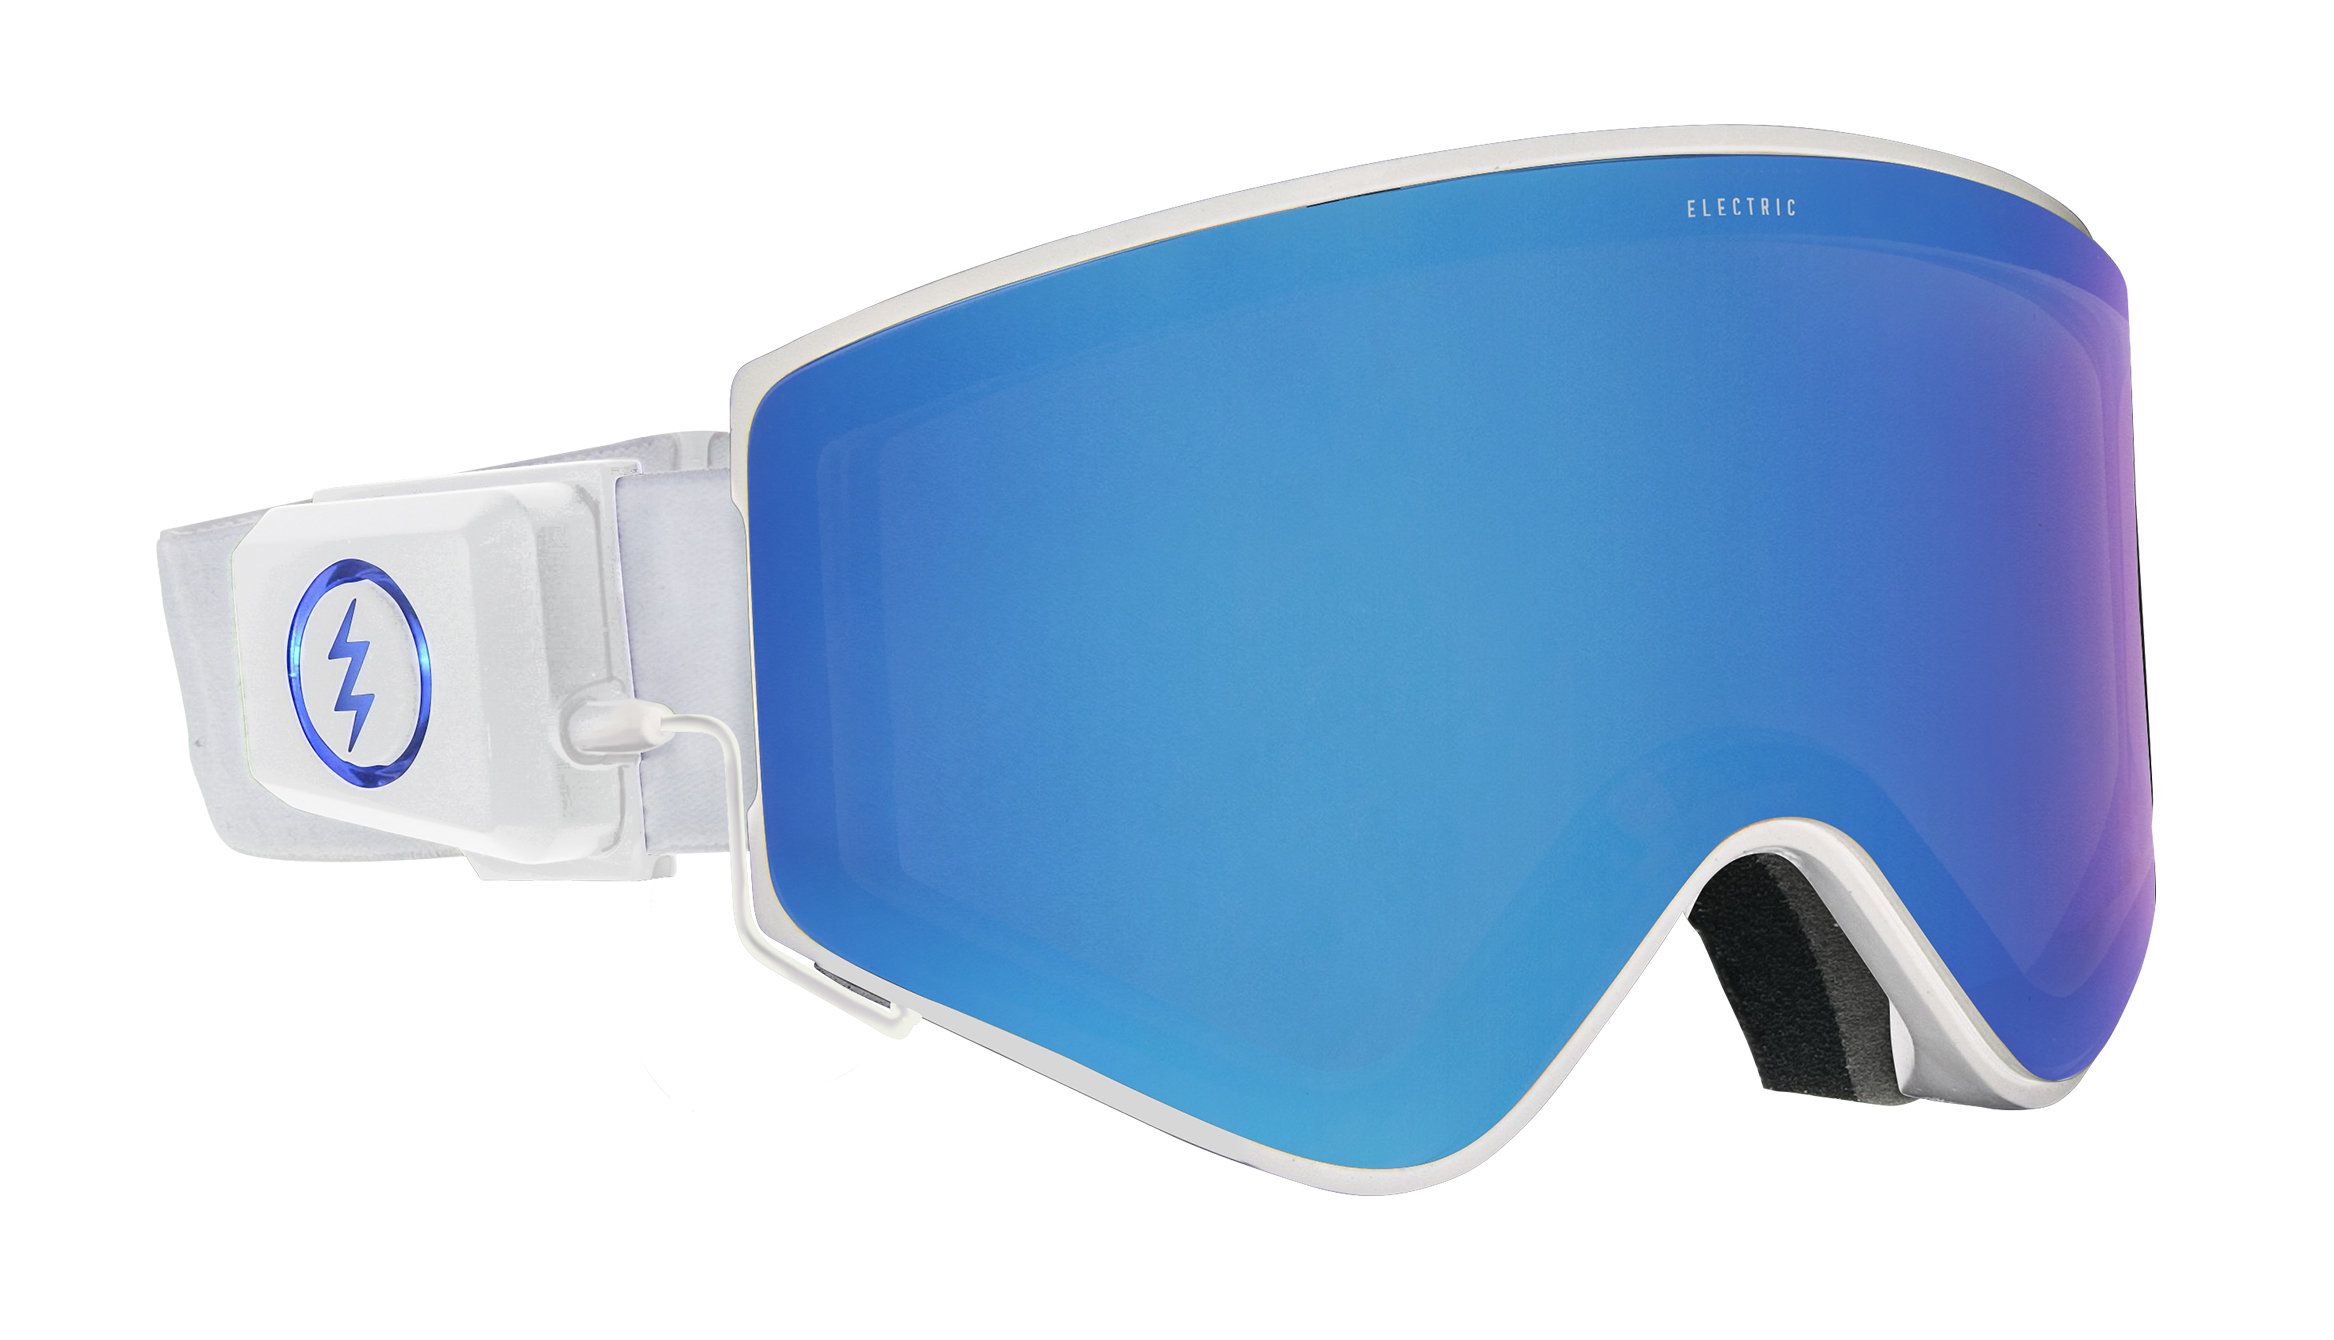 ELECTRON Frame Color: MATTE WHITE Lens Color: BLUE CHROME Price: ¥35,000